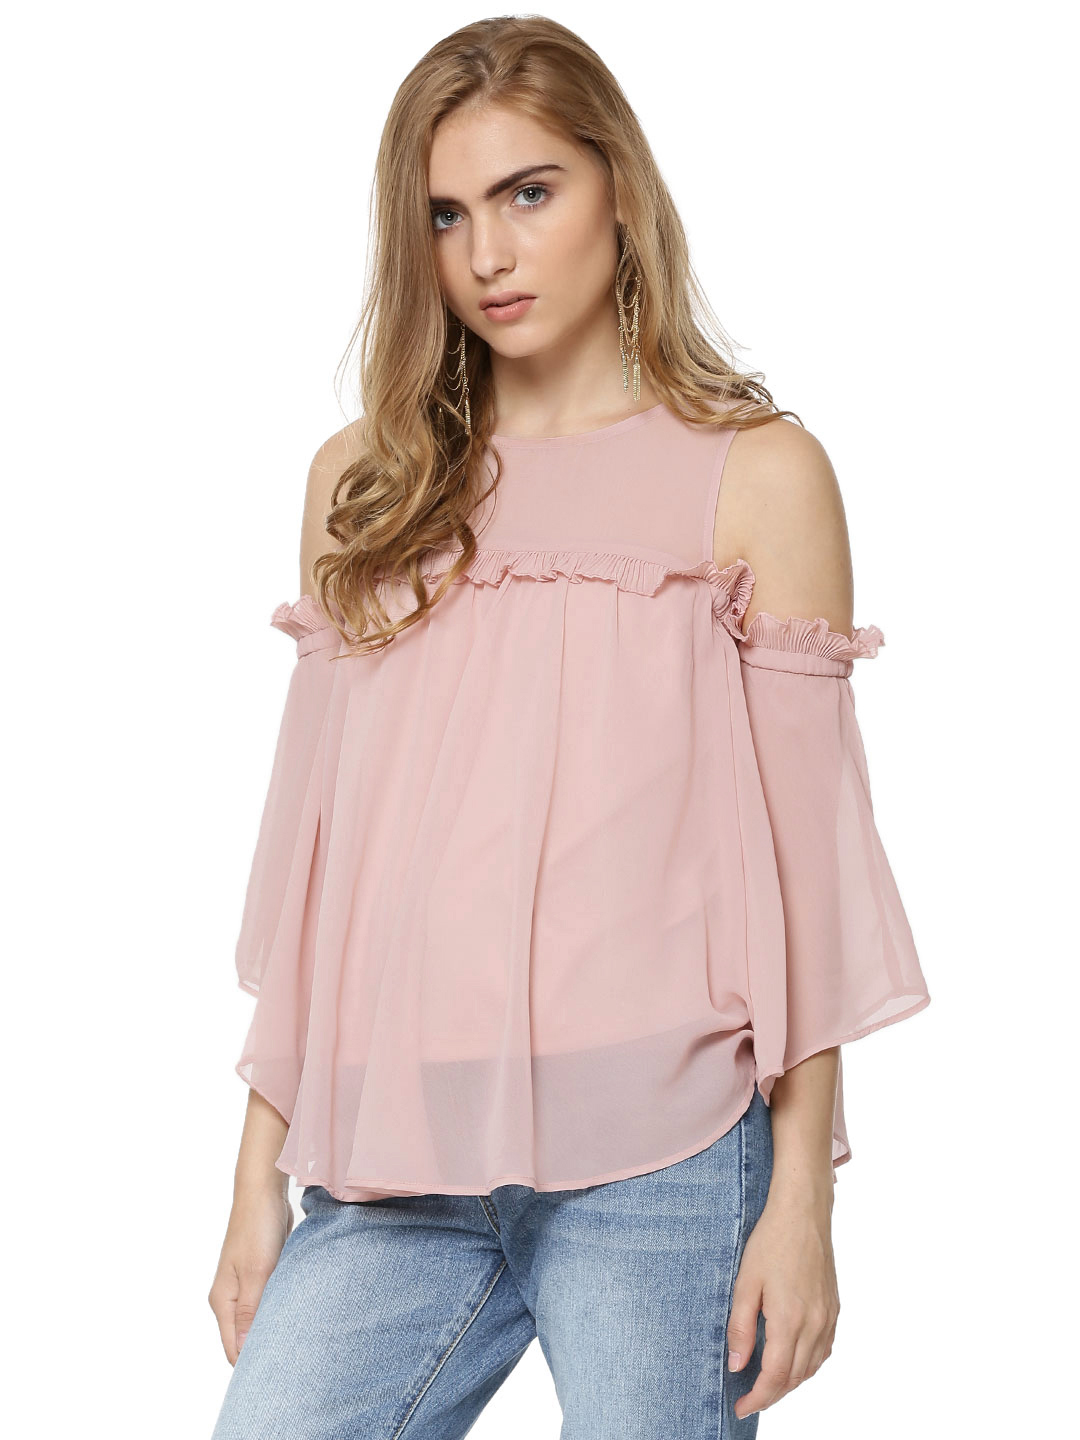 Ri-Dress Pink RIDRESS Ruffle Cold Shoulder Top 1